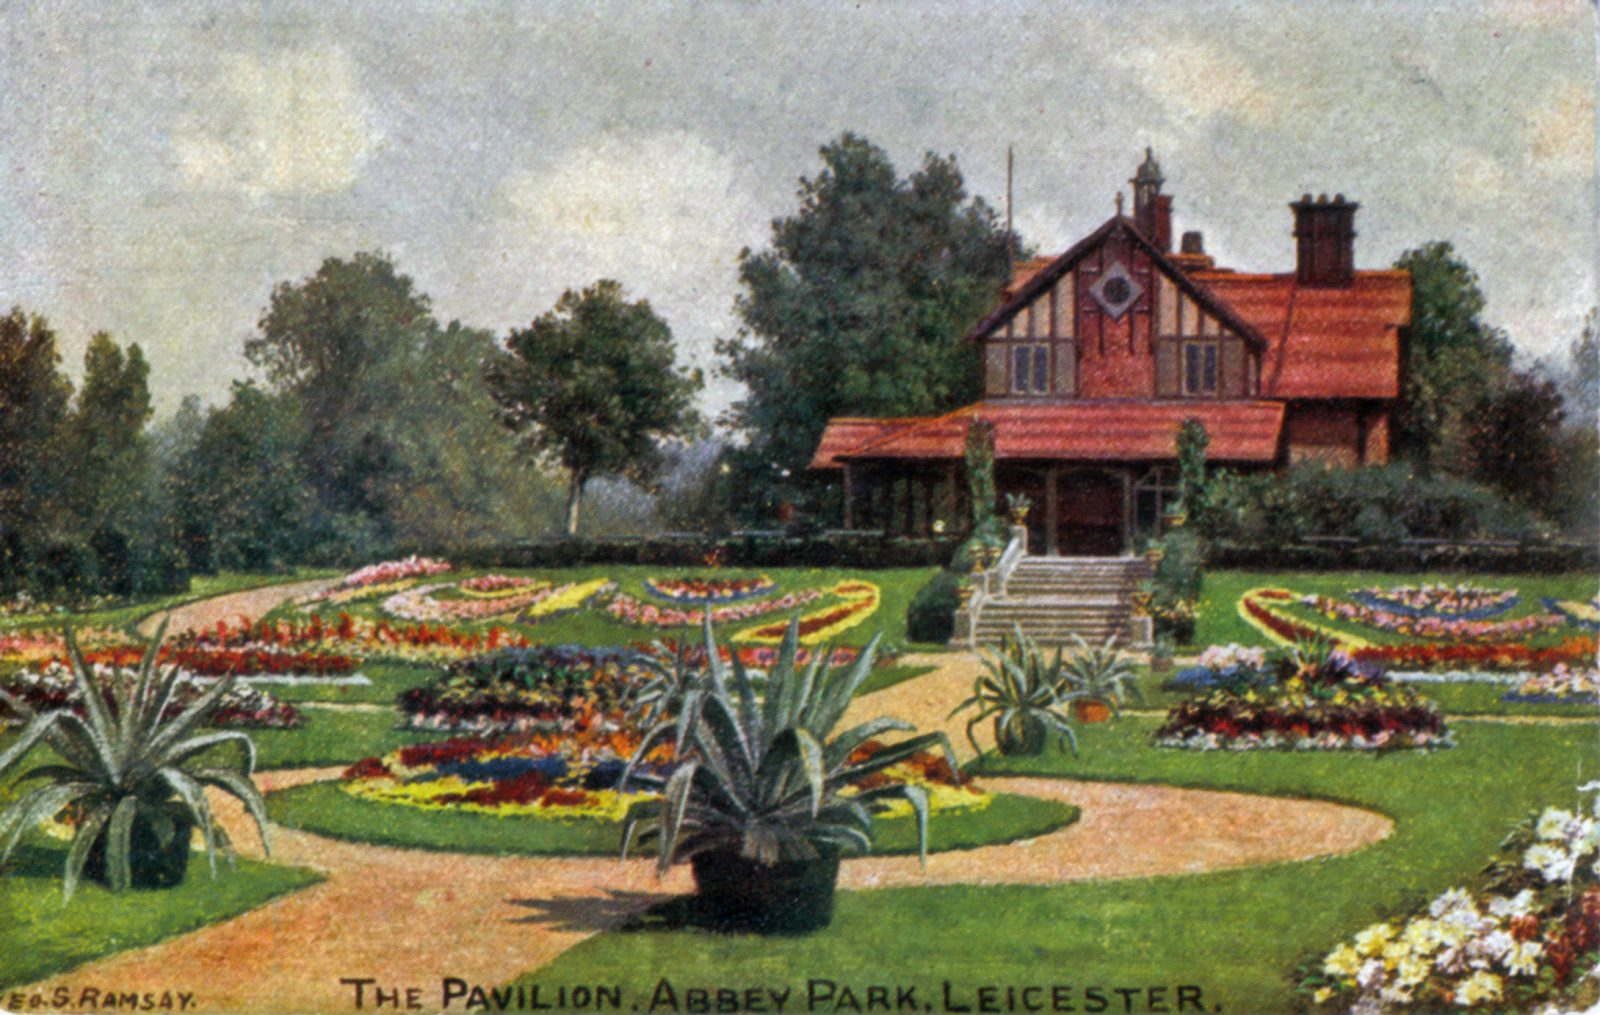 Abbey Park, Leicester. 1901-1920: View across elaborately planted flower beds with the Pavilion in the background. (File:1003)